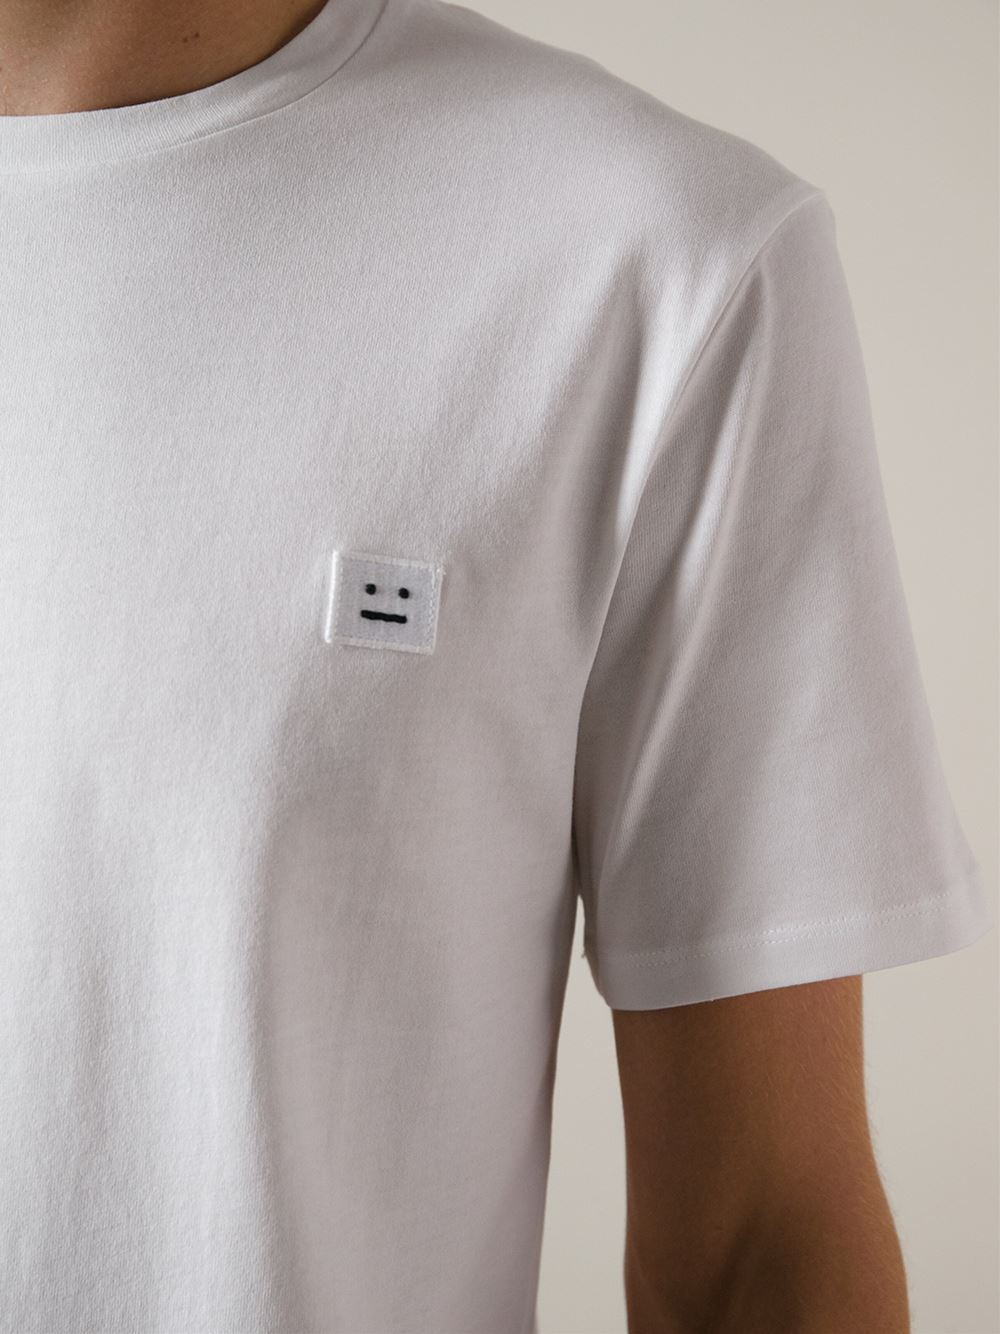 Lyst - Acne studios 'Measure-Face Badge' T-Shirt in White ...